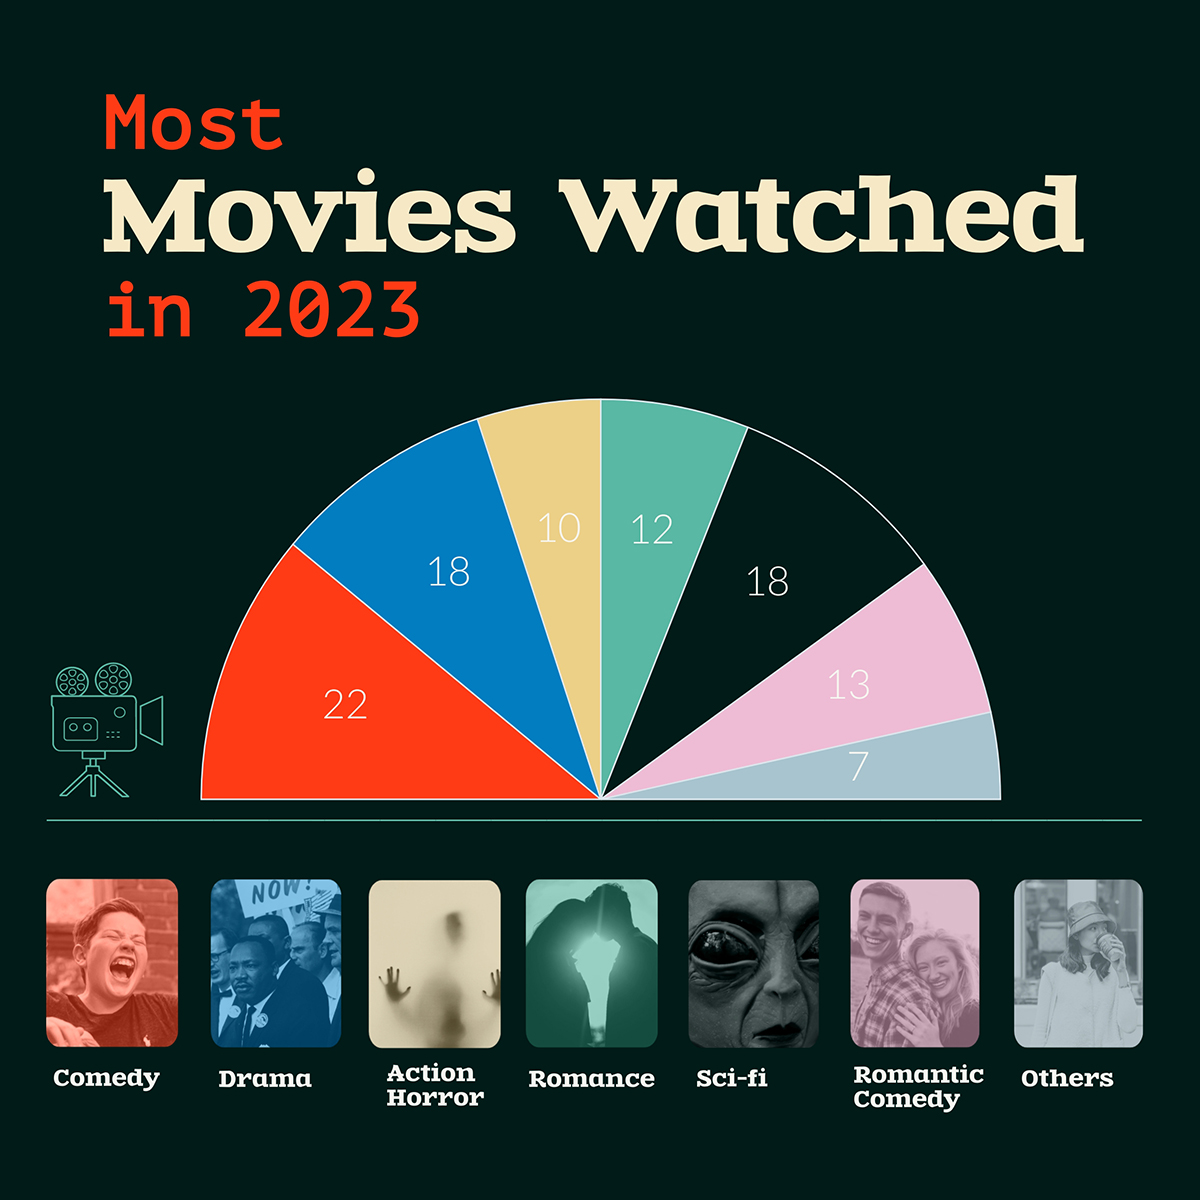 A movies watched pie chart template available in Visme.